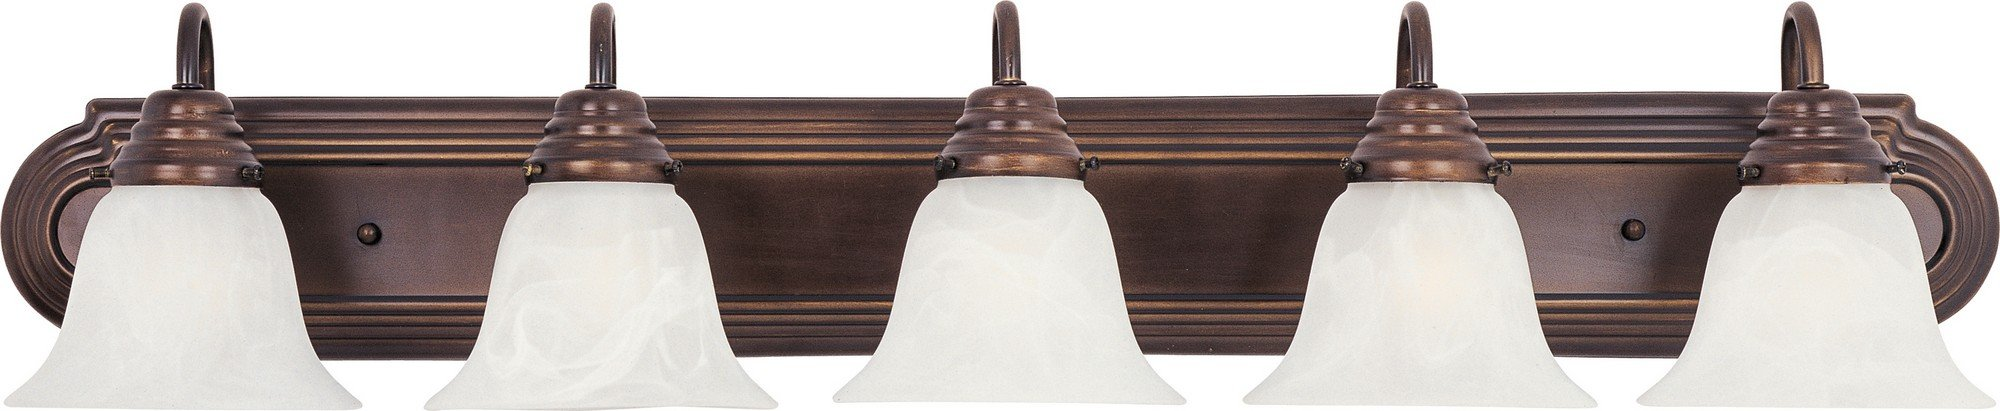 Maxim 8015MROI Essentials 5-Light Bath Vanity, Oil Rubbed Bronze Finish, Marble Glass, MB Incandescent Incandescent Bulb , 12W Max., Wet Safety Rating, 3000K Color Temp, ELV Dimmable, Opal Glass Shade Material, 840 Rated Lumens by Maxim Lighting